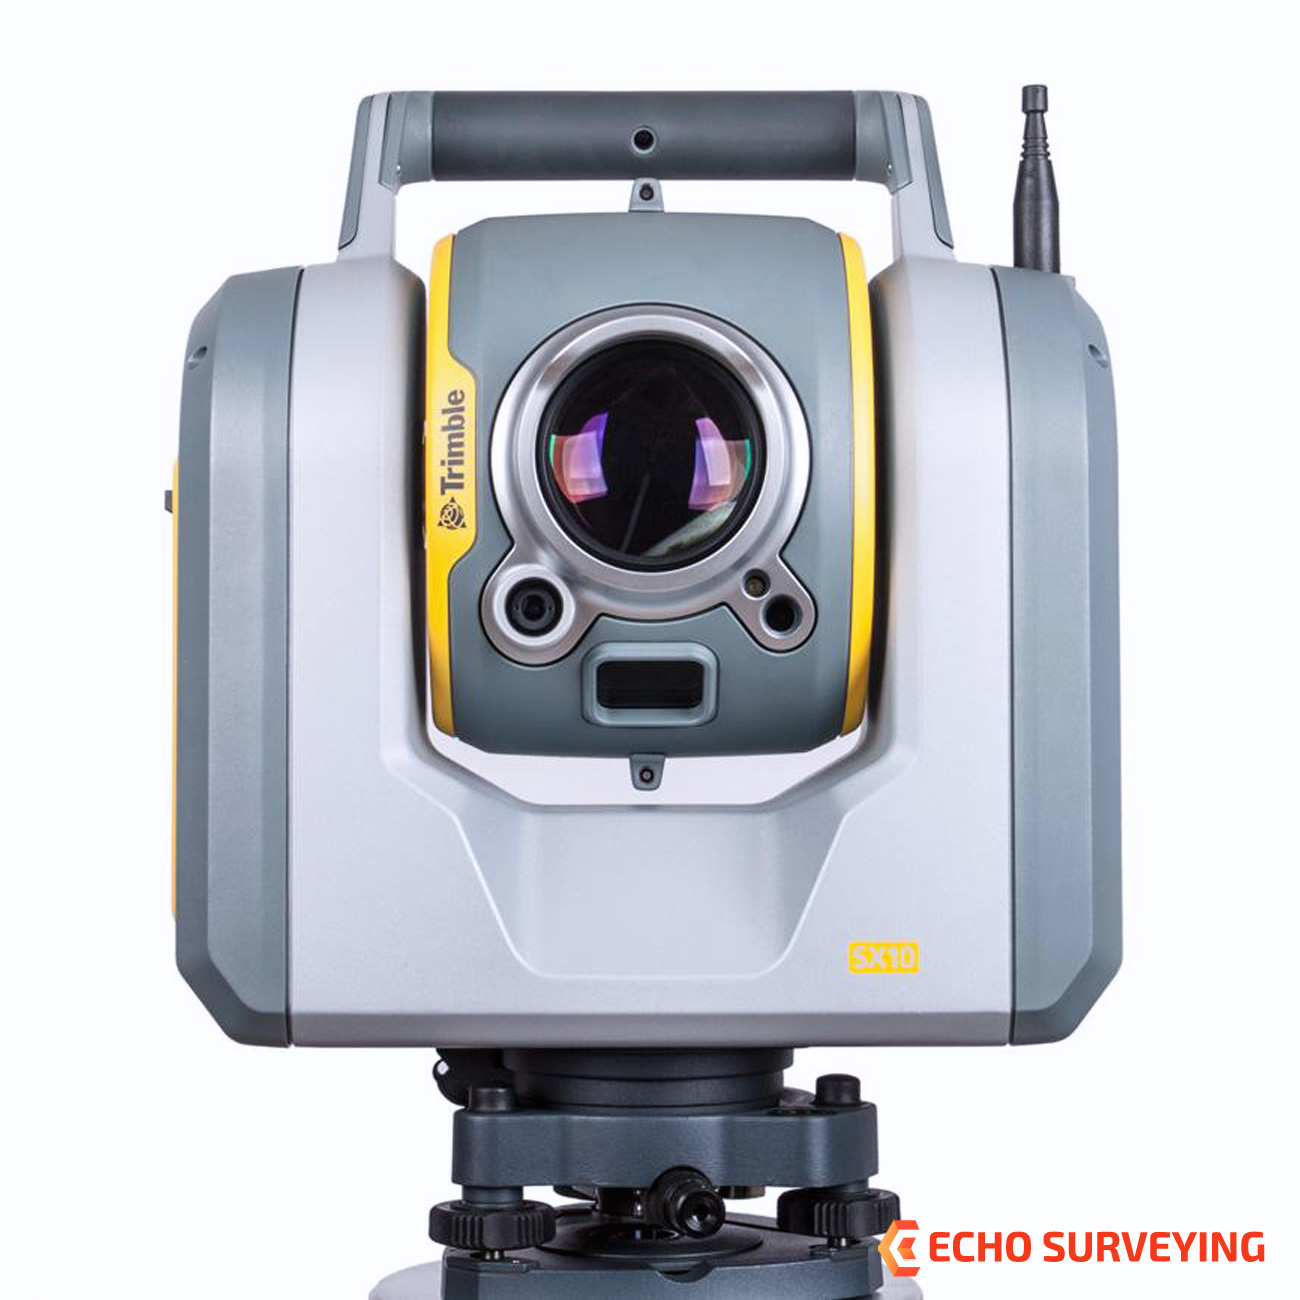 Trimble-SX10-1-Scanning-Total-Station.jpg